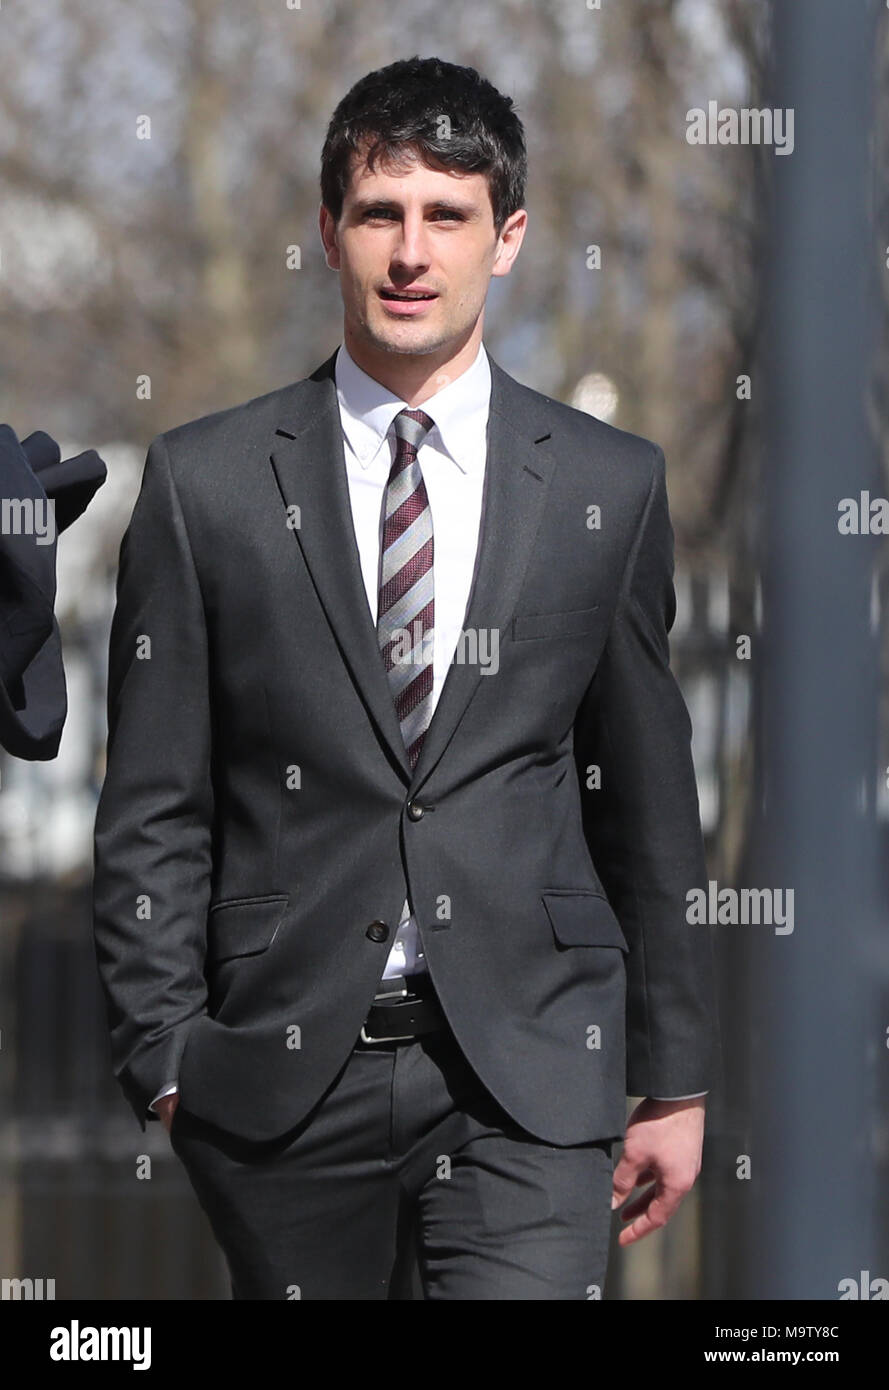 Blane McIlroy leaving Belfast Crown Court after being found not guilty of exposure. - Stock Image